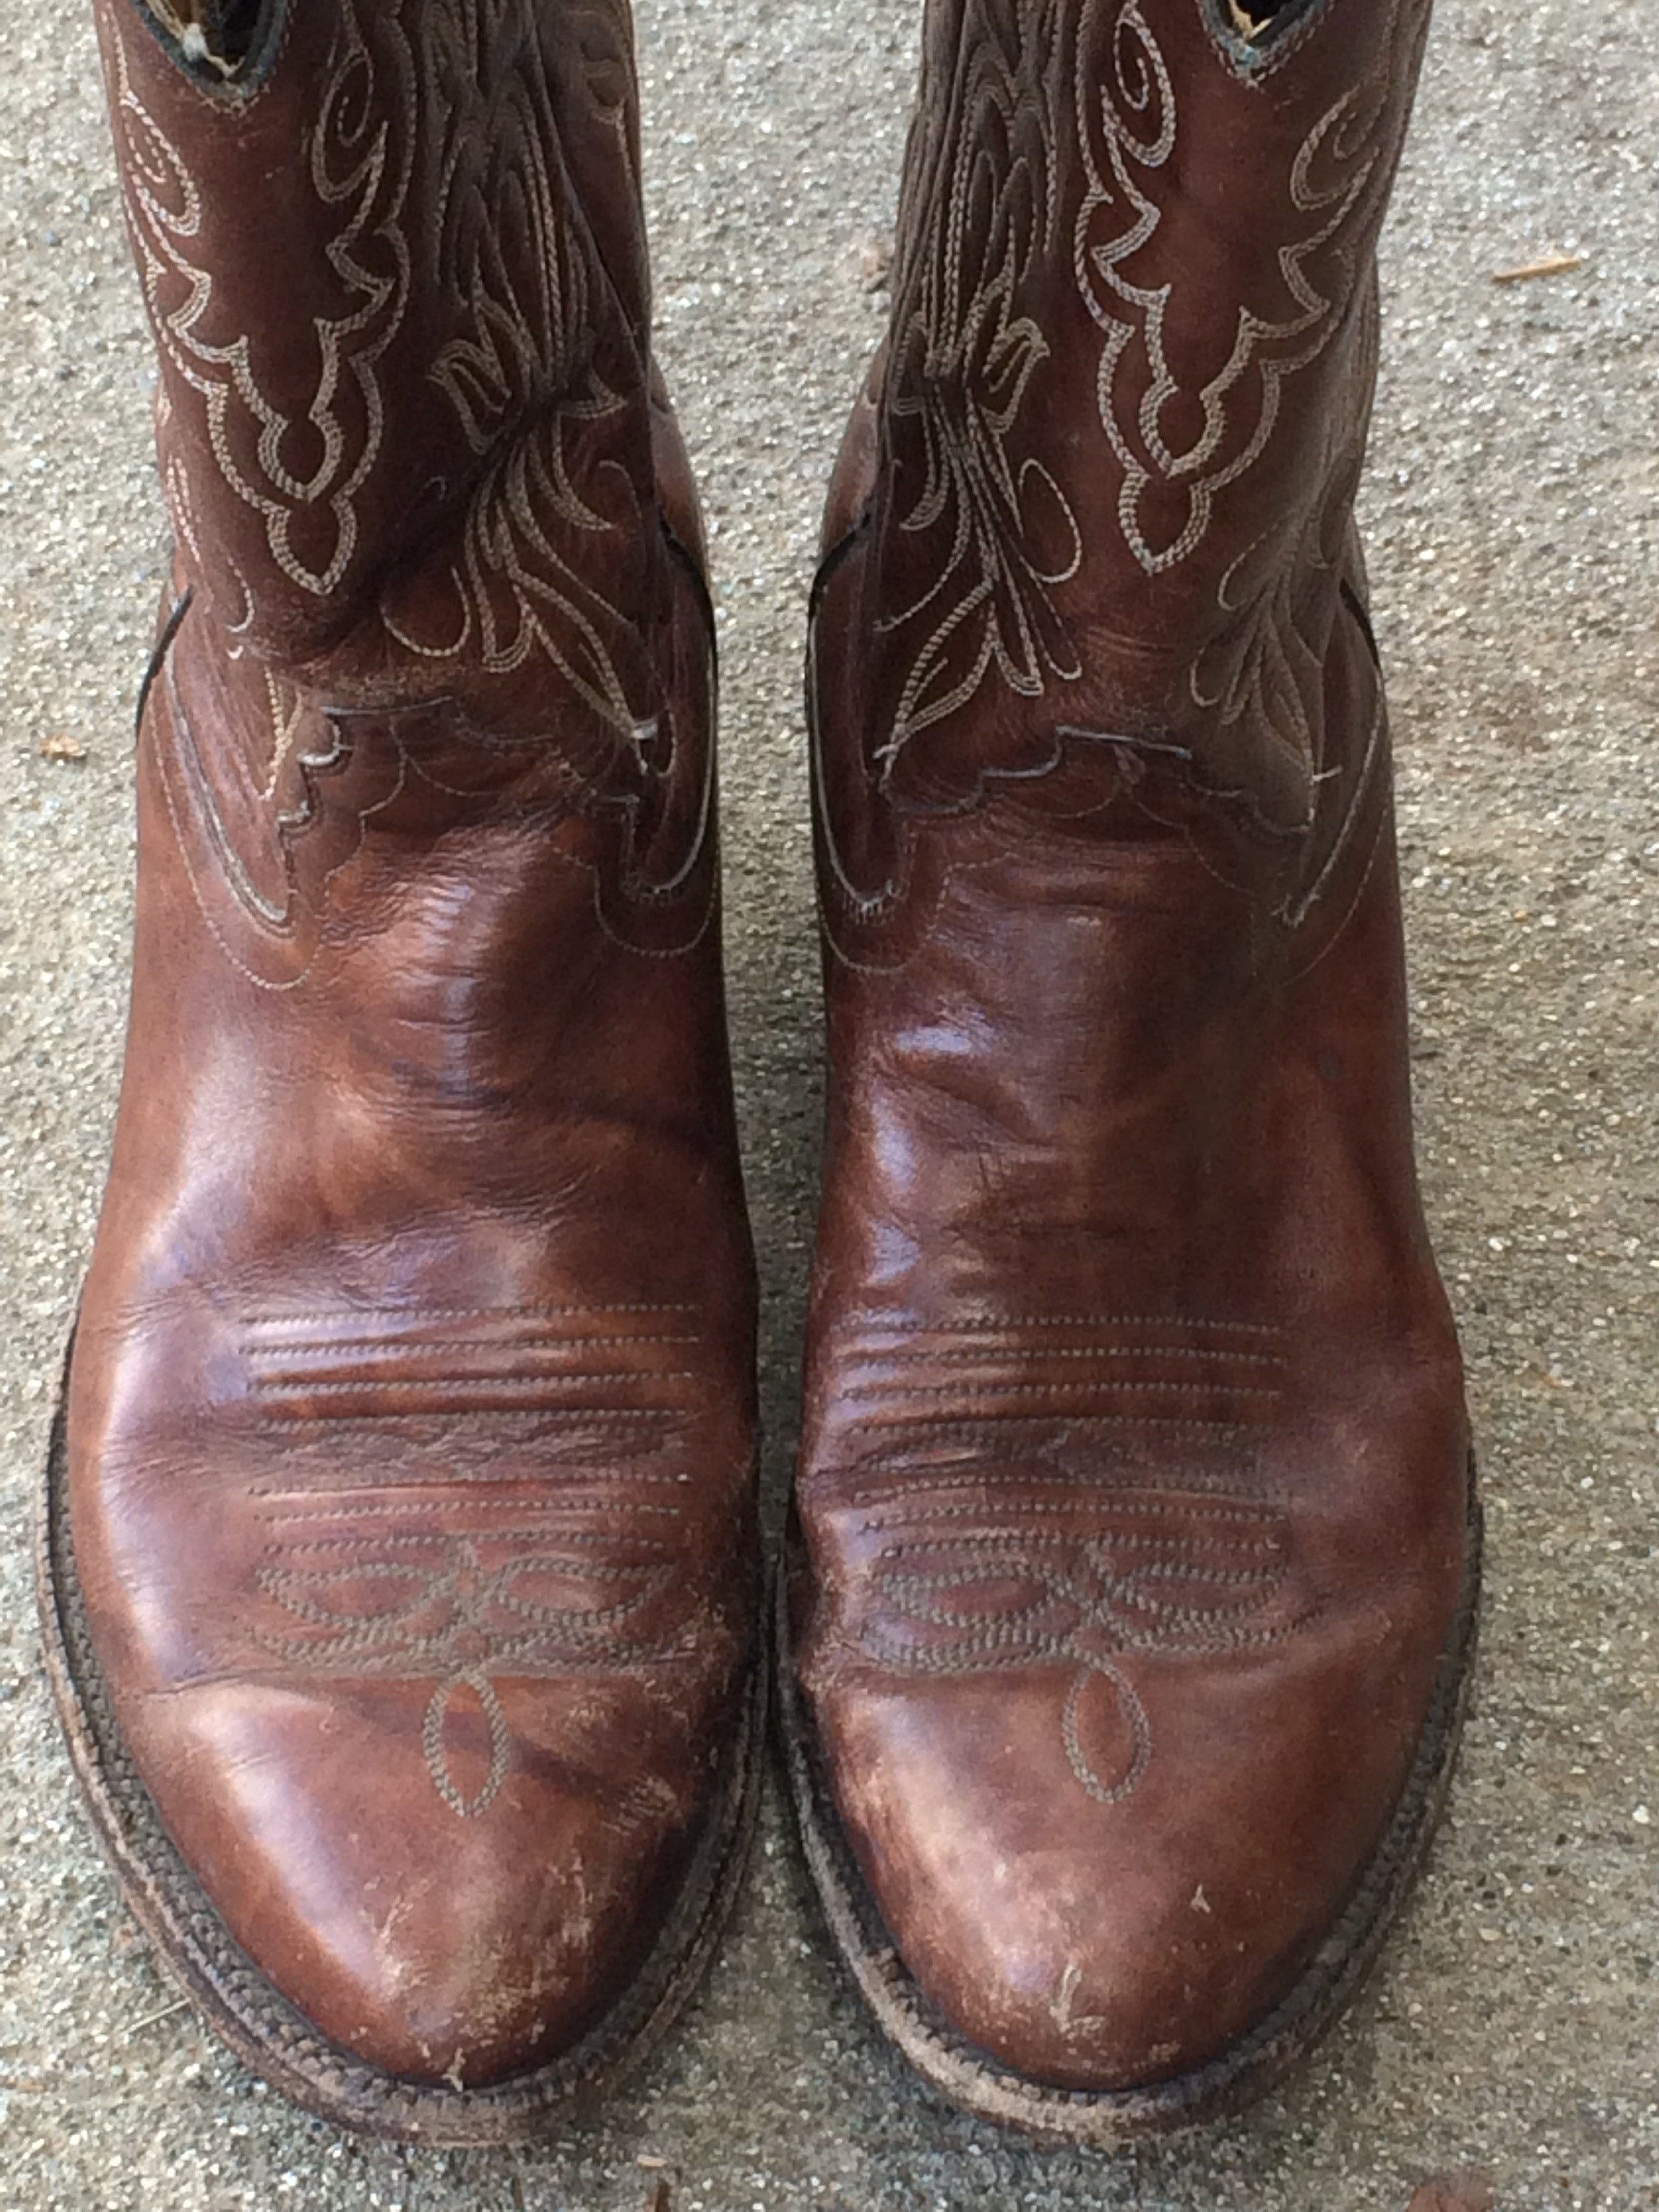 942b6e5eefed7 How to Buy Vintage Cowboy Boots